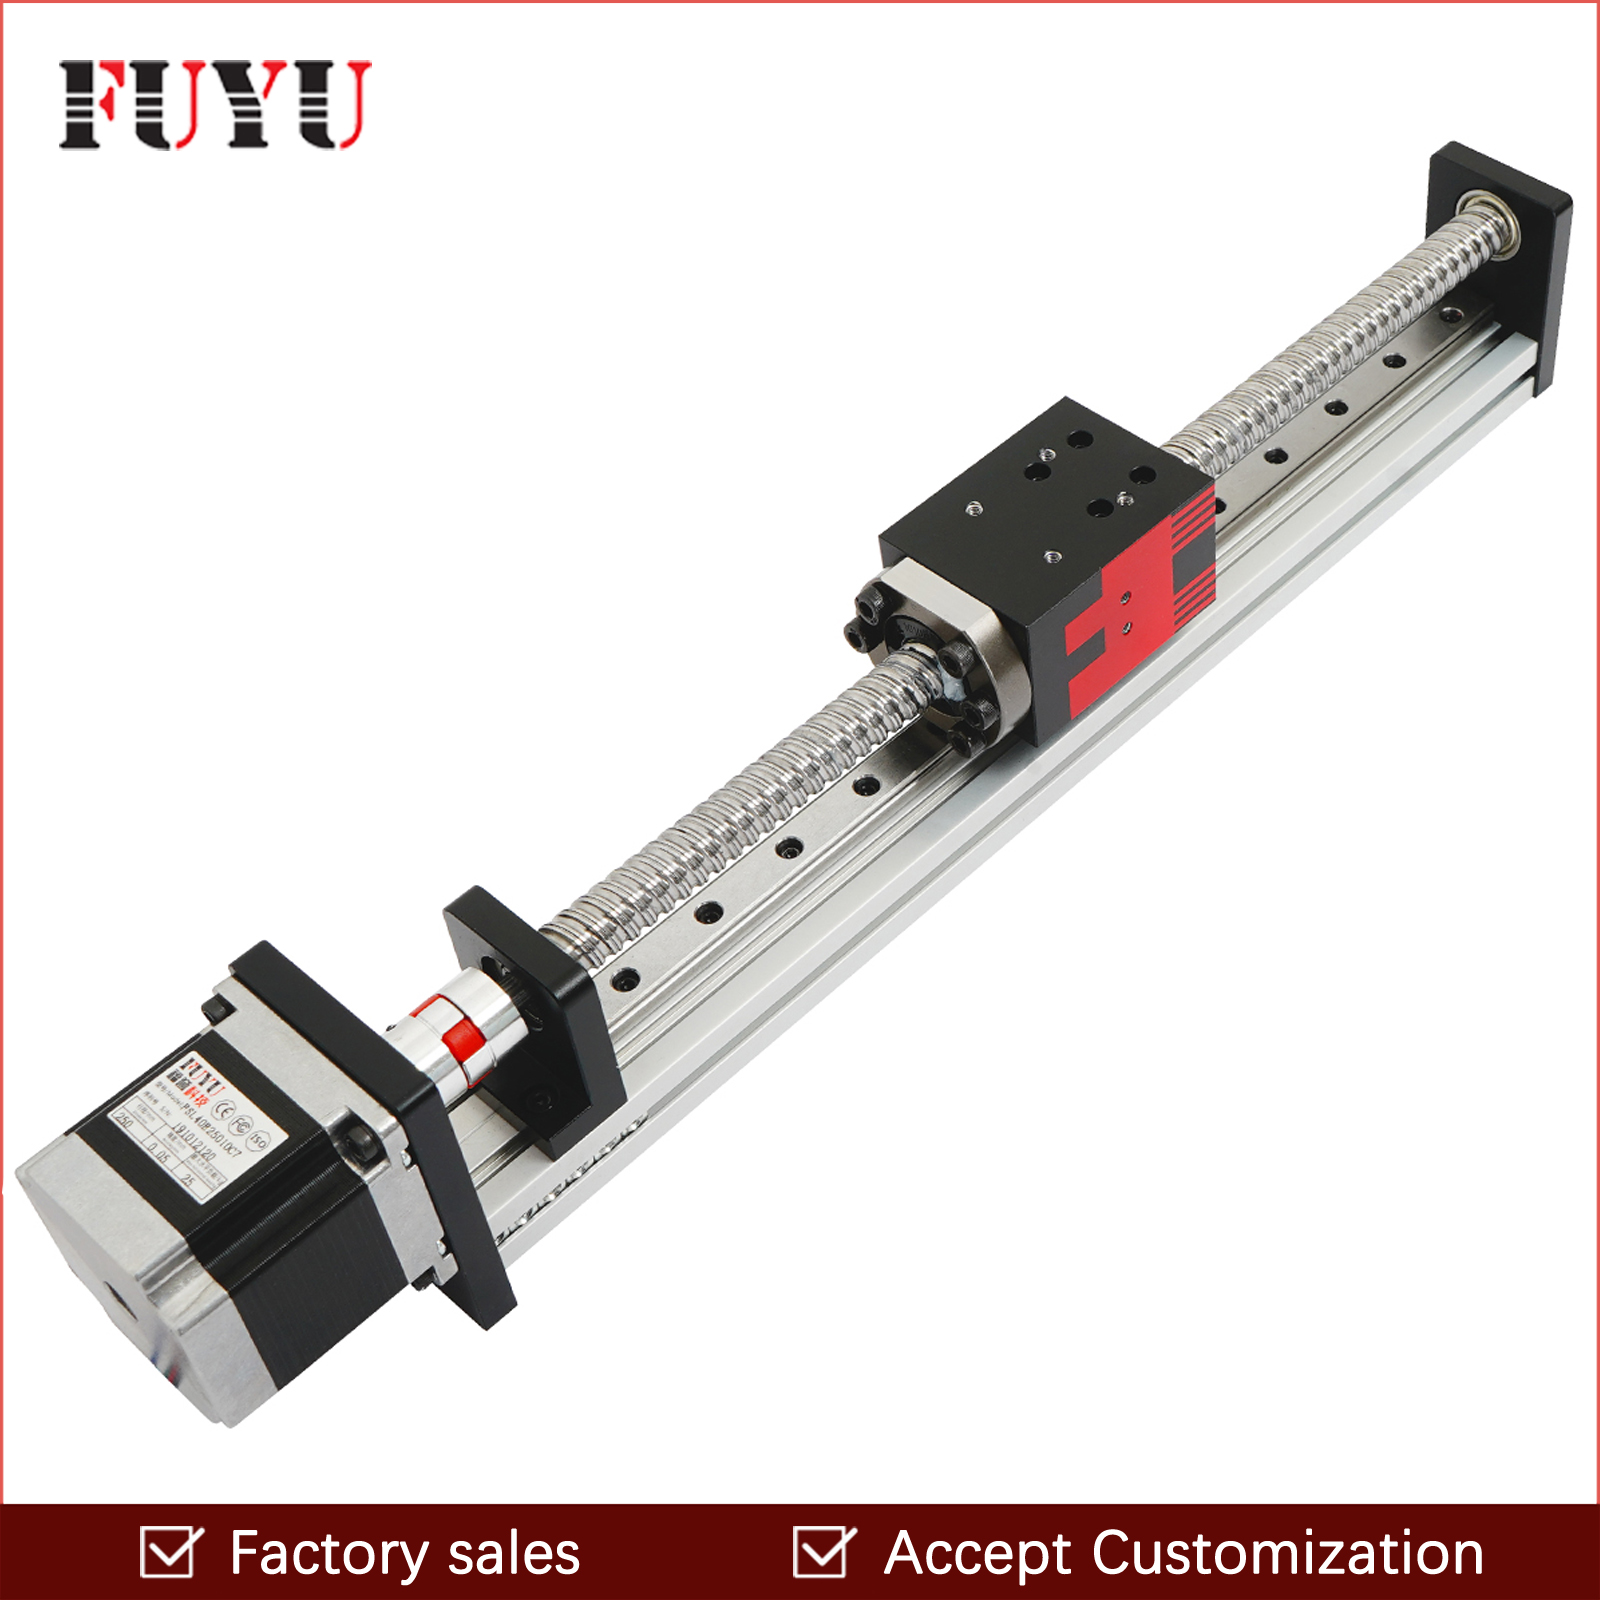 Free shipping FUYU Brand C7 Ball Screw Driven CNC Linear Motion Stage Slide Actuator Guide Rail For 3d Printer Robotic Arm Kit image